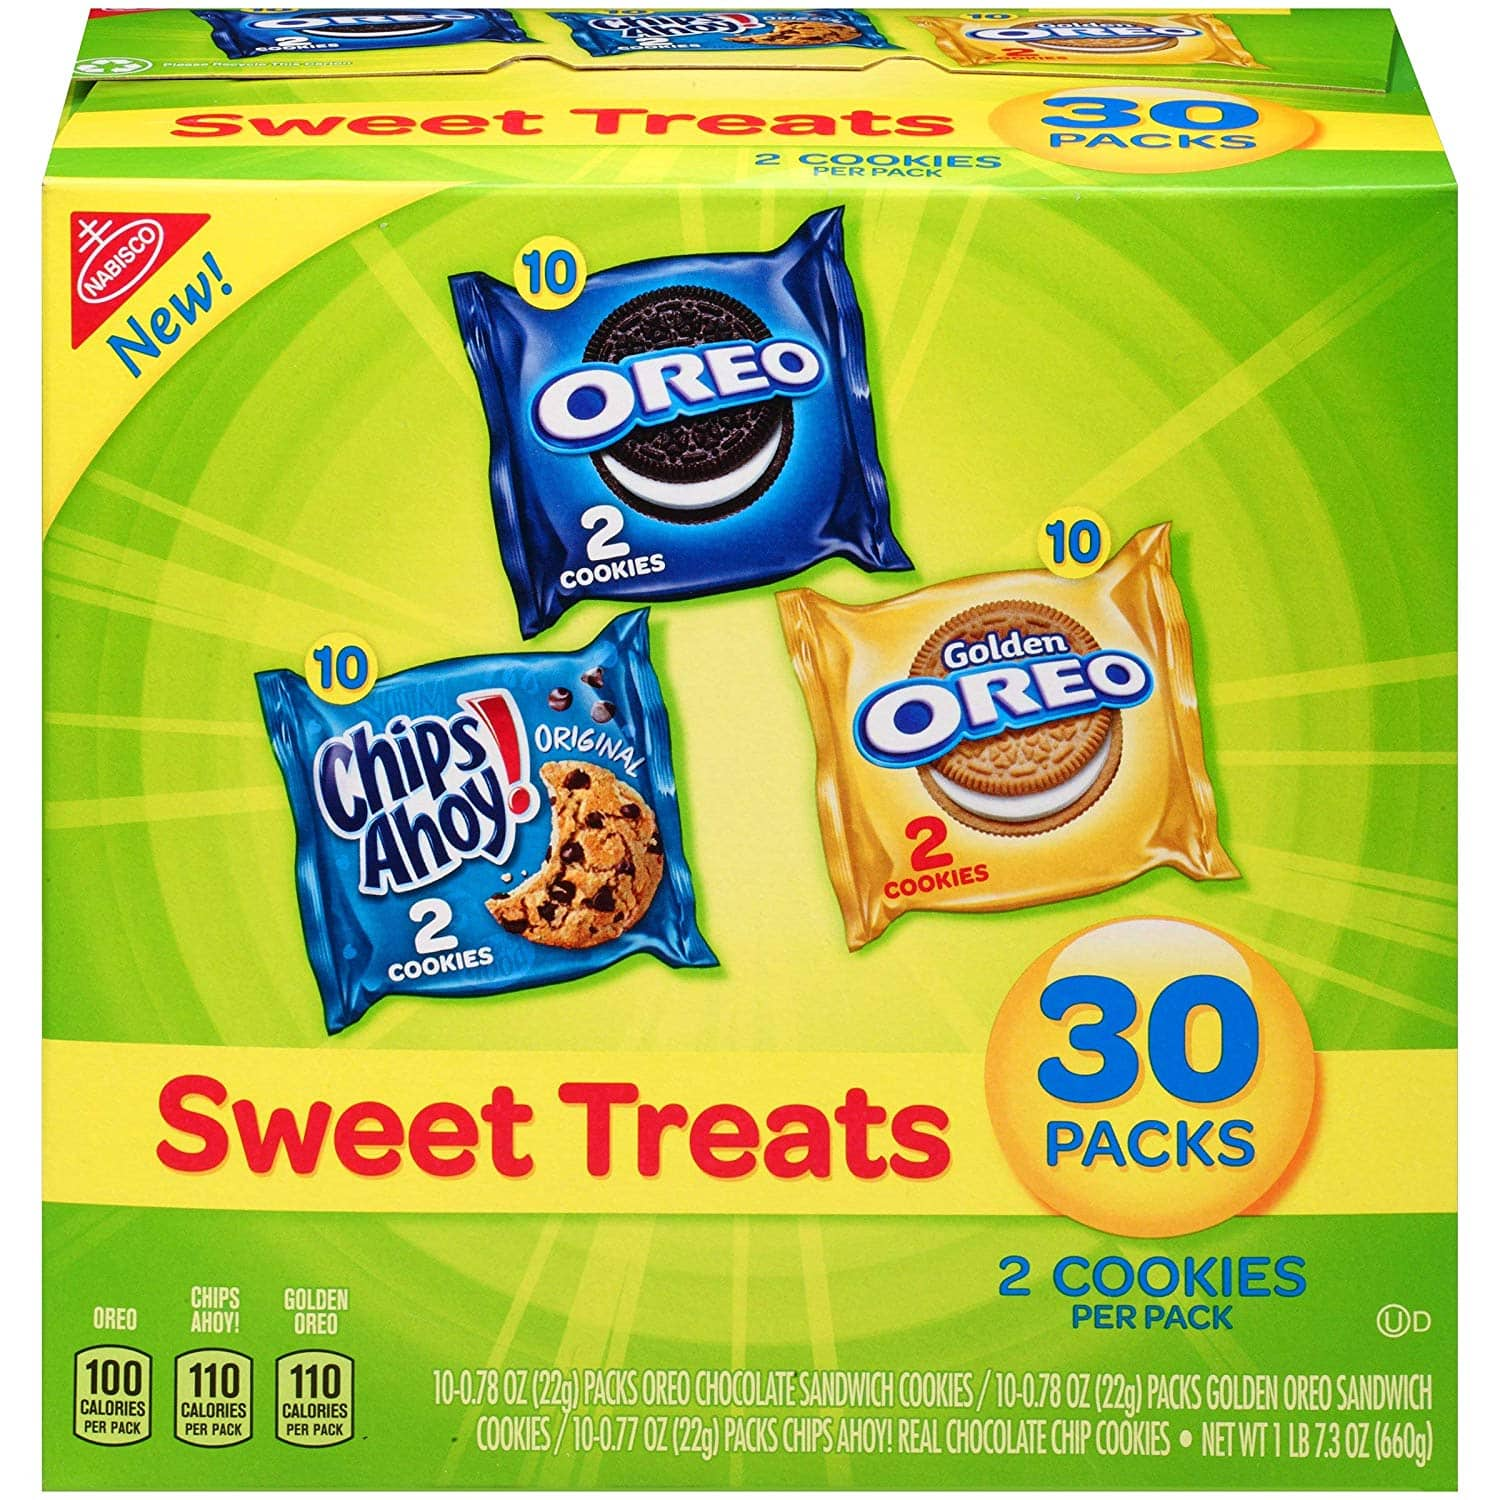 30-ct. Nabisco Cookies Sweet Treats Variety Pack Cookies - Oreo, Chips Ahoy, Golden Oreo $6.63 5% or $5.93 15%  & MORE w/s&s